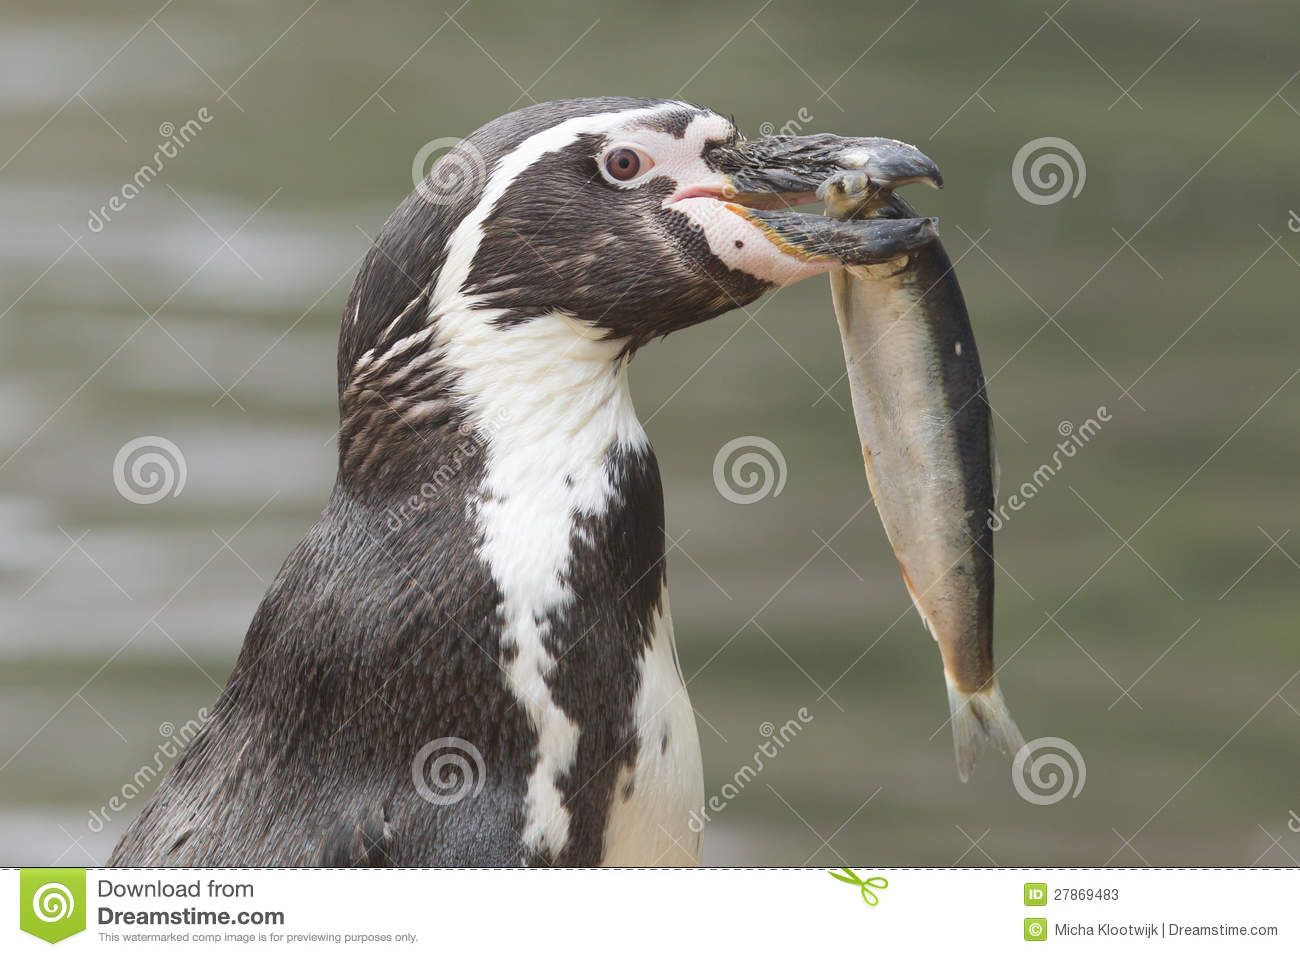 penguin eating fish